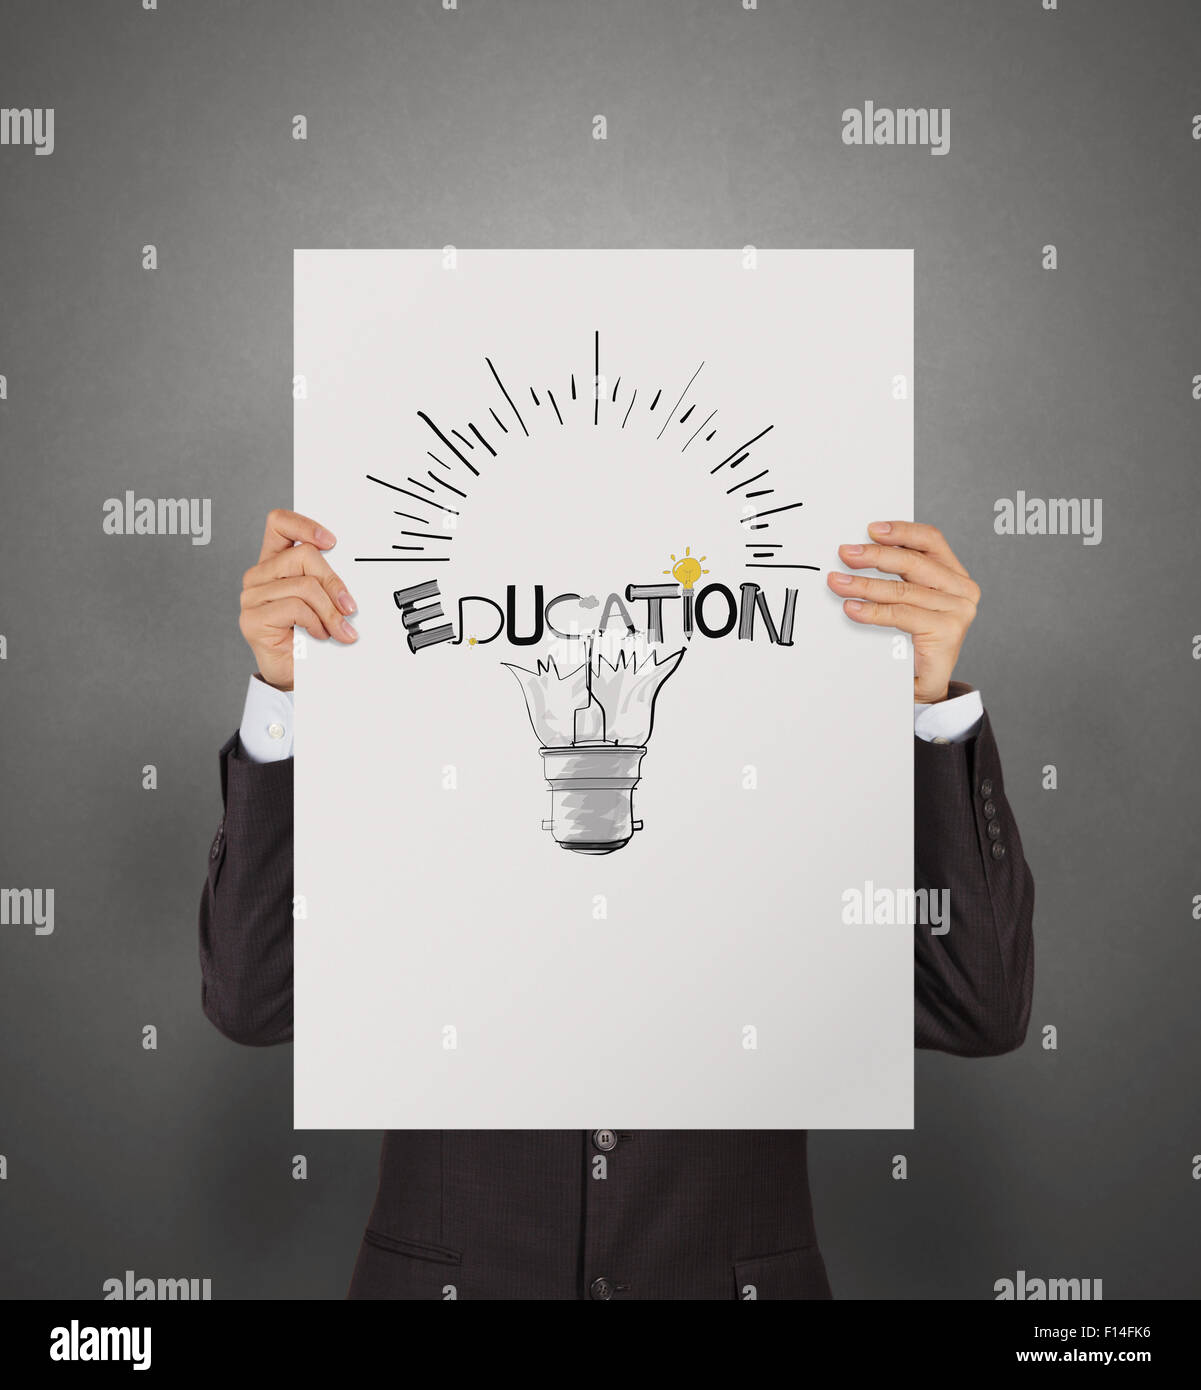 business man showing hand drawn graphic design education word and